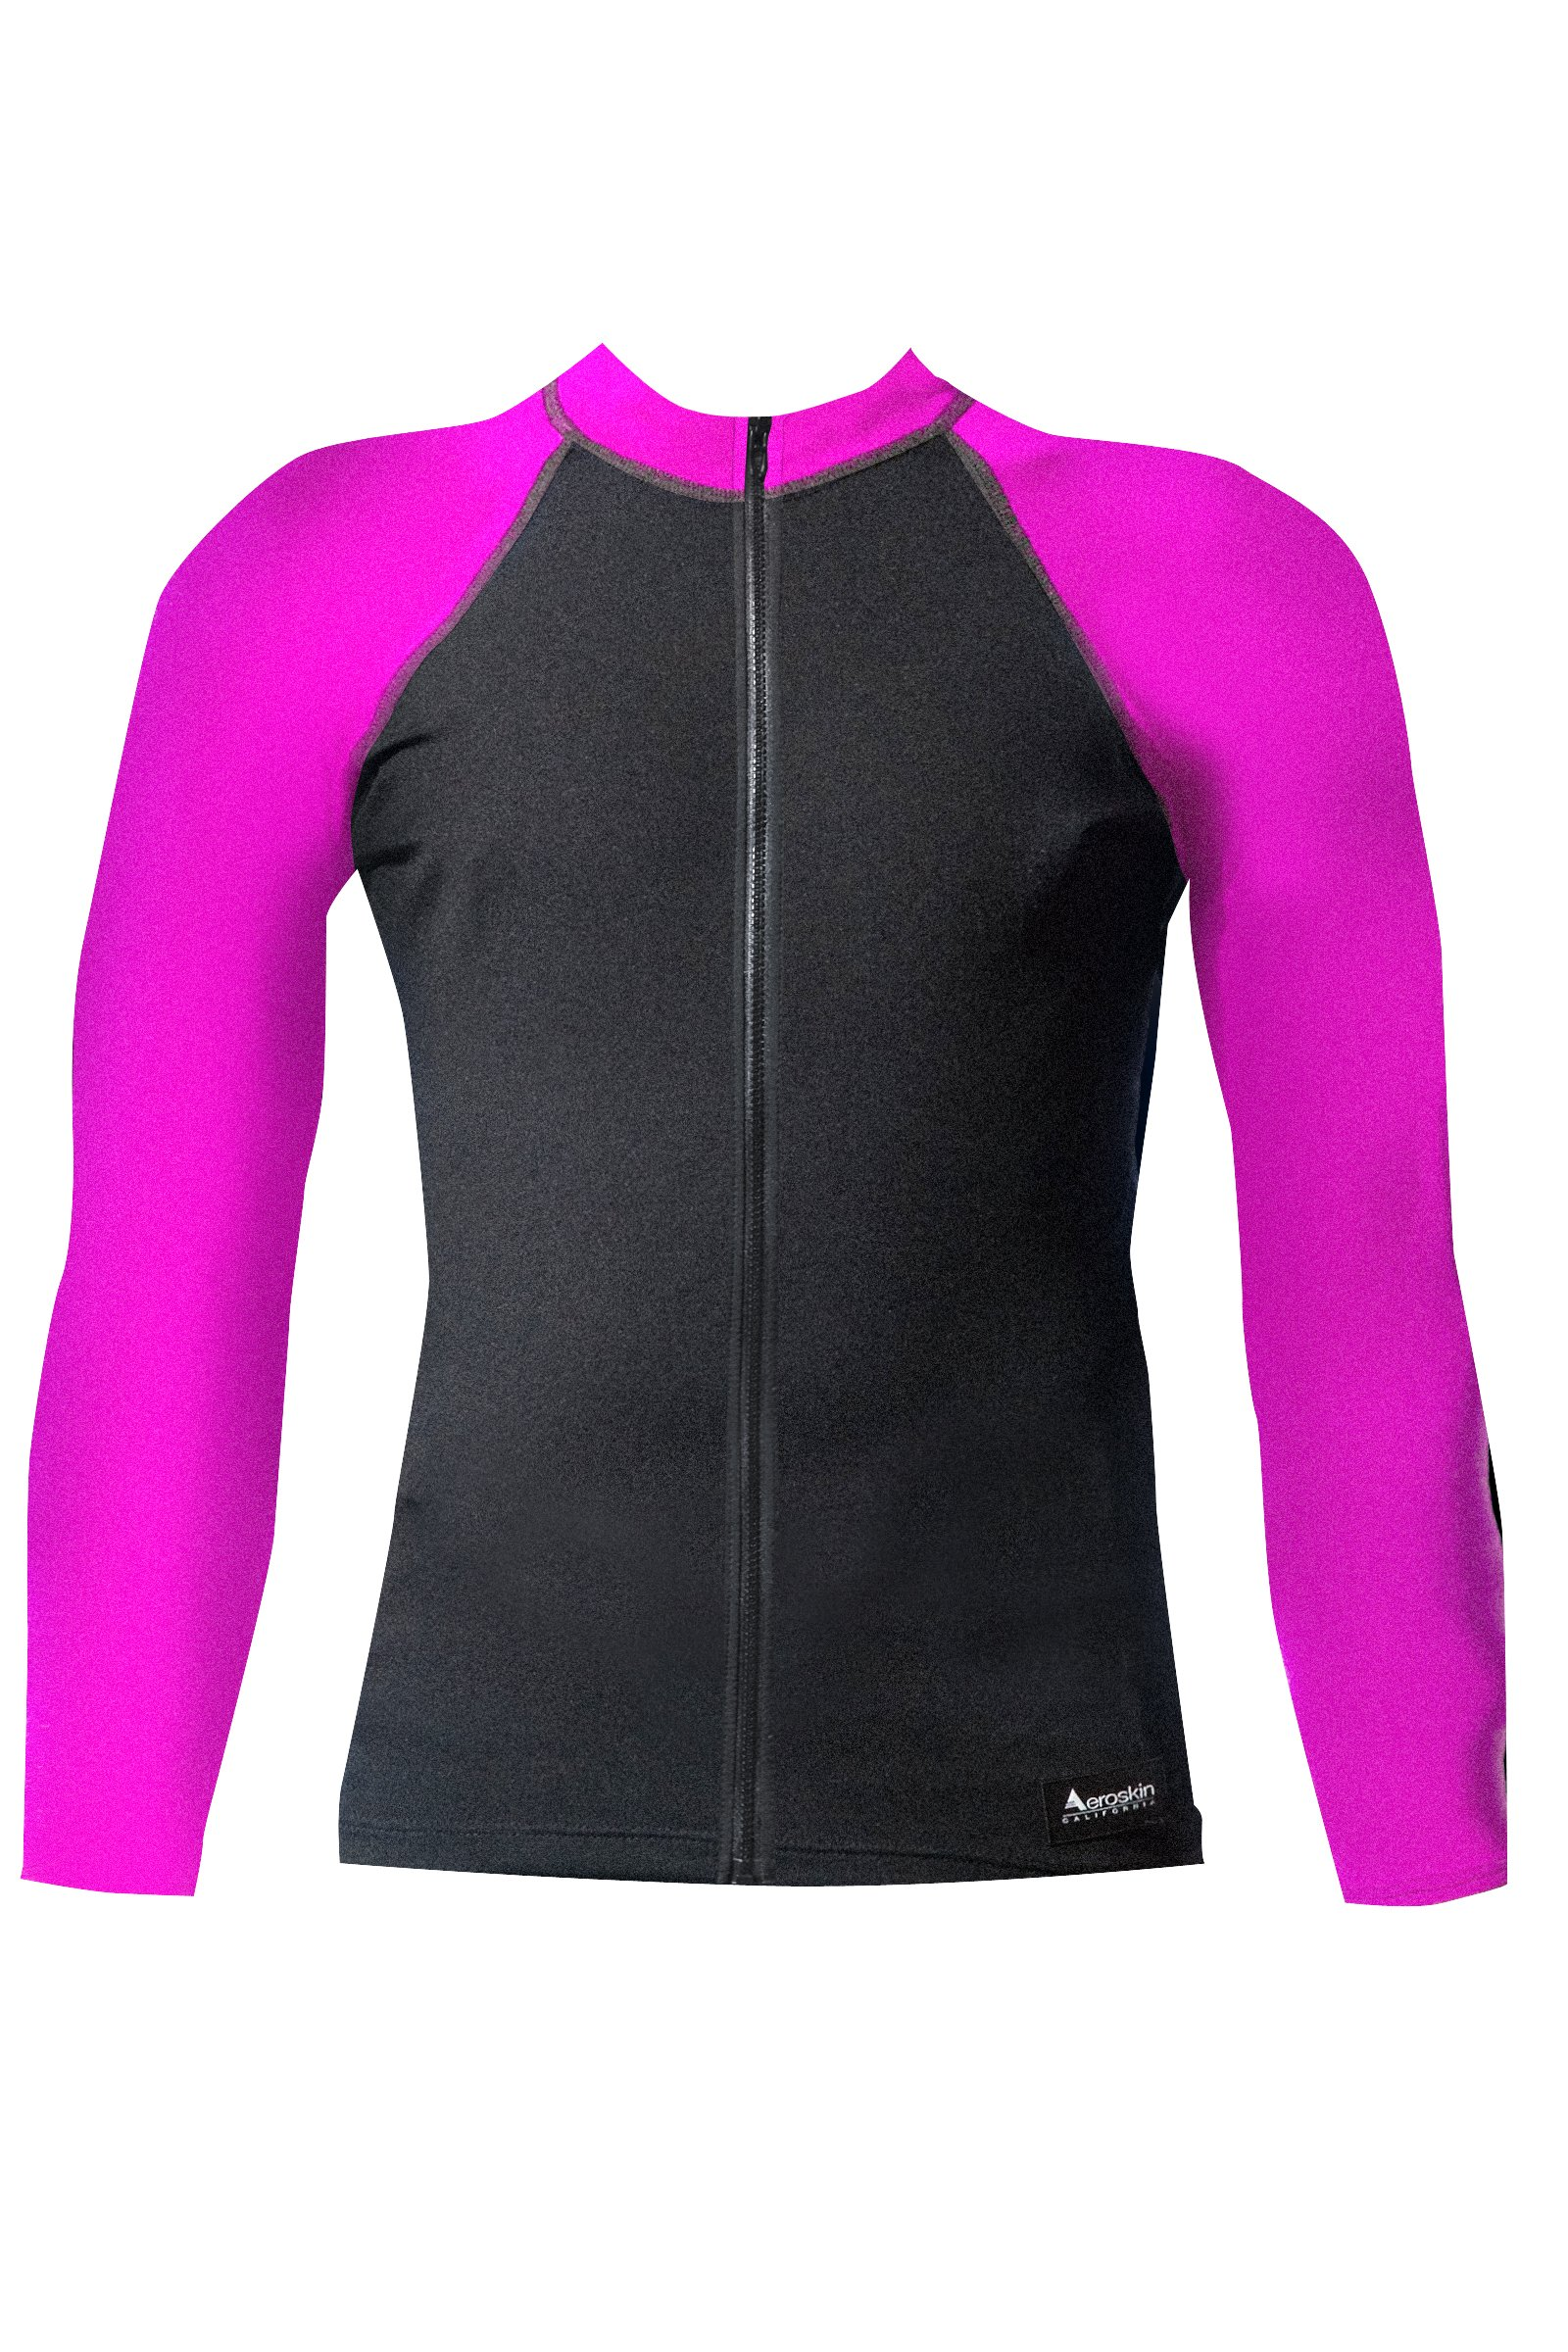 Aeroskin Raglan Long Sleeve Shirt with Color Accents, Fuzzy Collar and Front Zip (Black/Fuchsia, X-Small) by Aeroskin (Image #1)